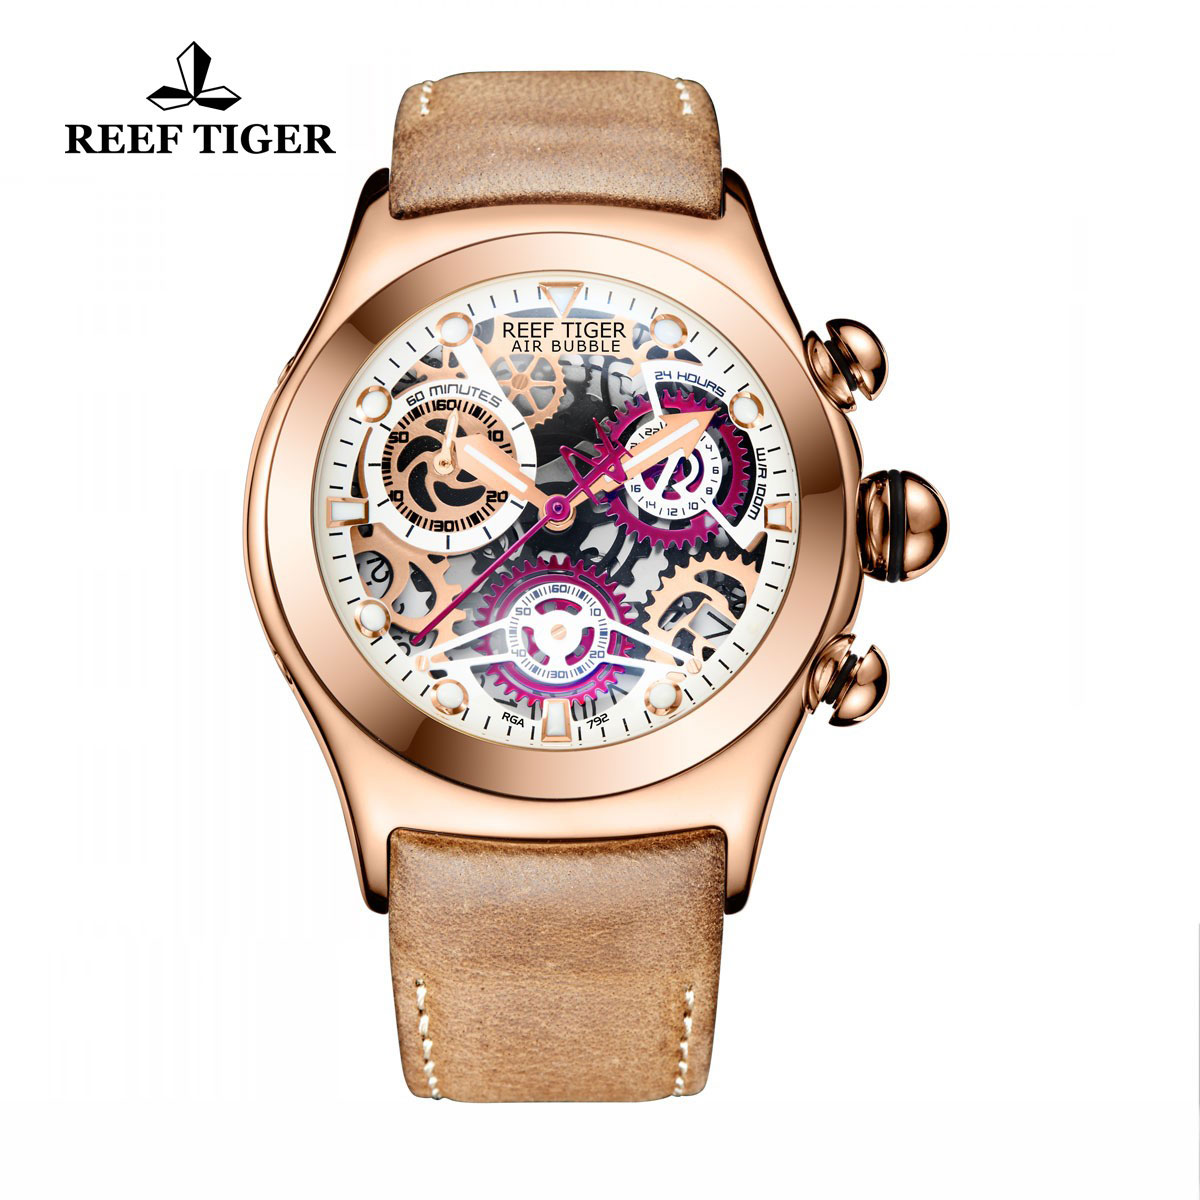 Reef Tiger Big Bang Sport Casual Watches Chronograph Watch Rose Gold Case Skeleton Dial RGA792-PWBS